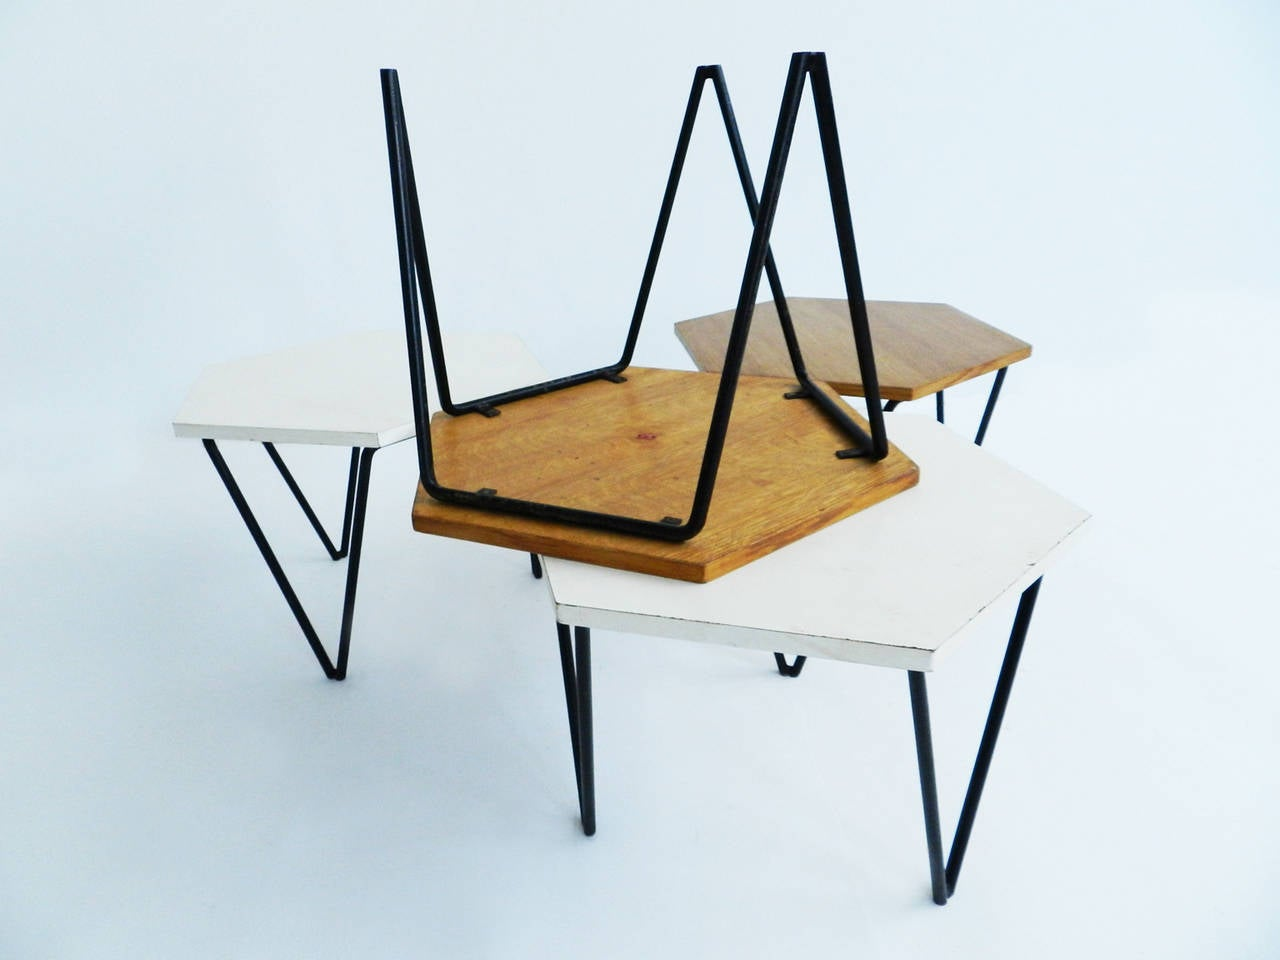 ... Gio Ponti Laminated and Wood Modular Coffee Tables for ISA at 1stdibs